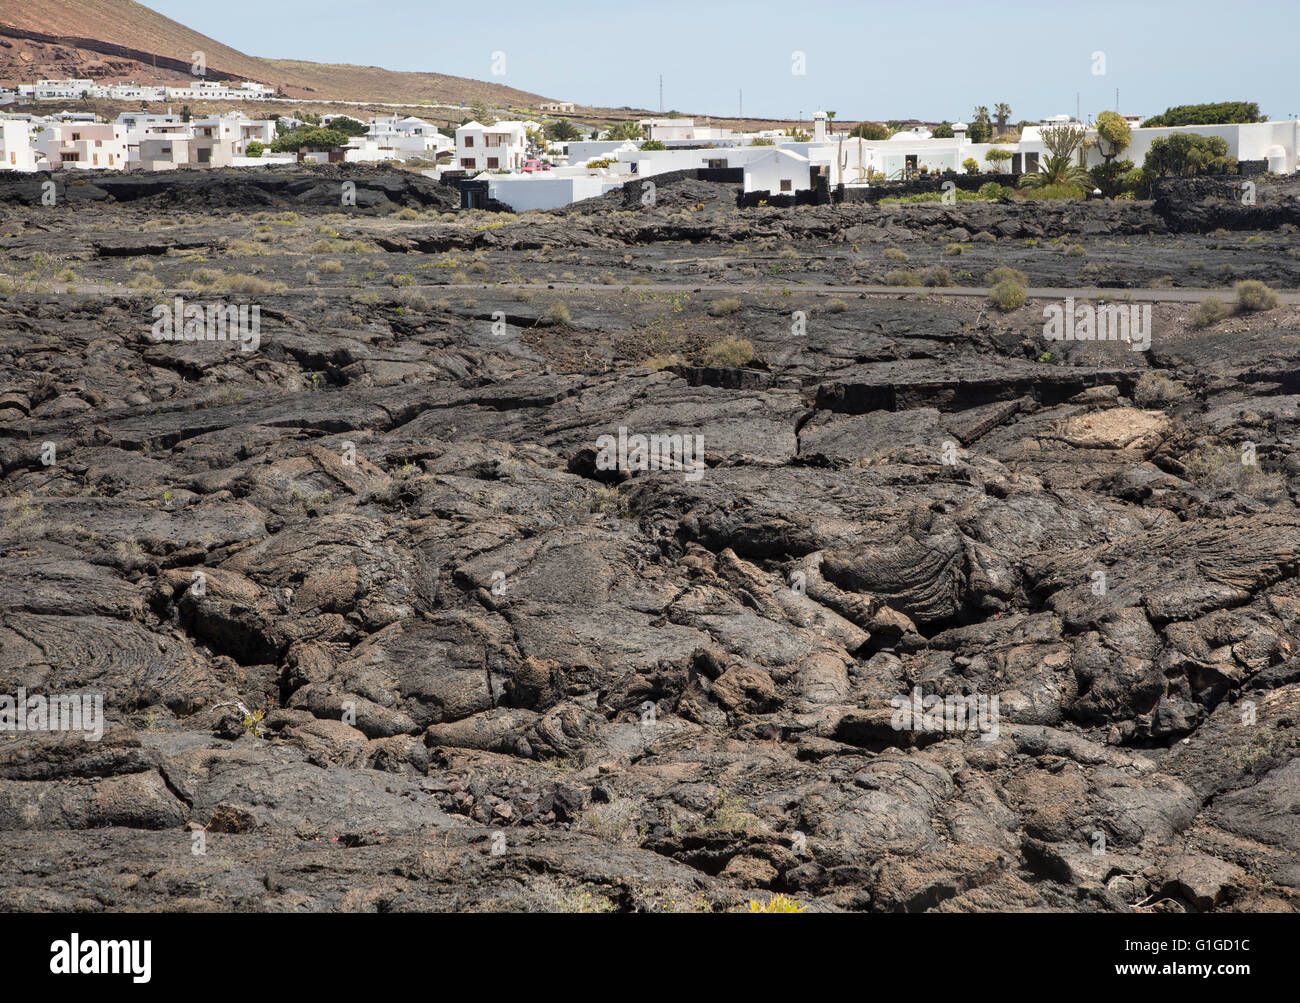 Solidified pahoehoe or ropey lava field, Tahiche village, Lanzarote, Canary Islands, Spain - Stock Image